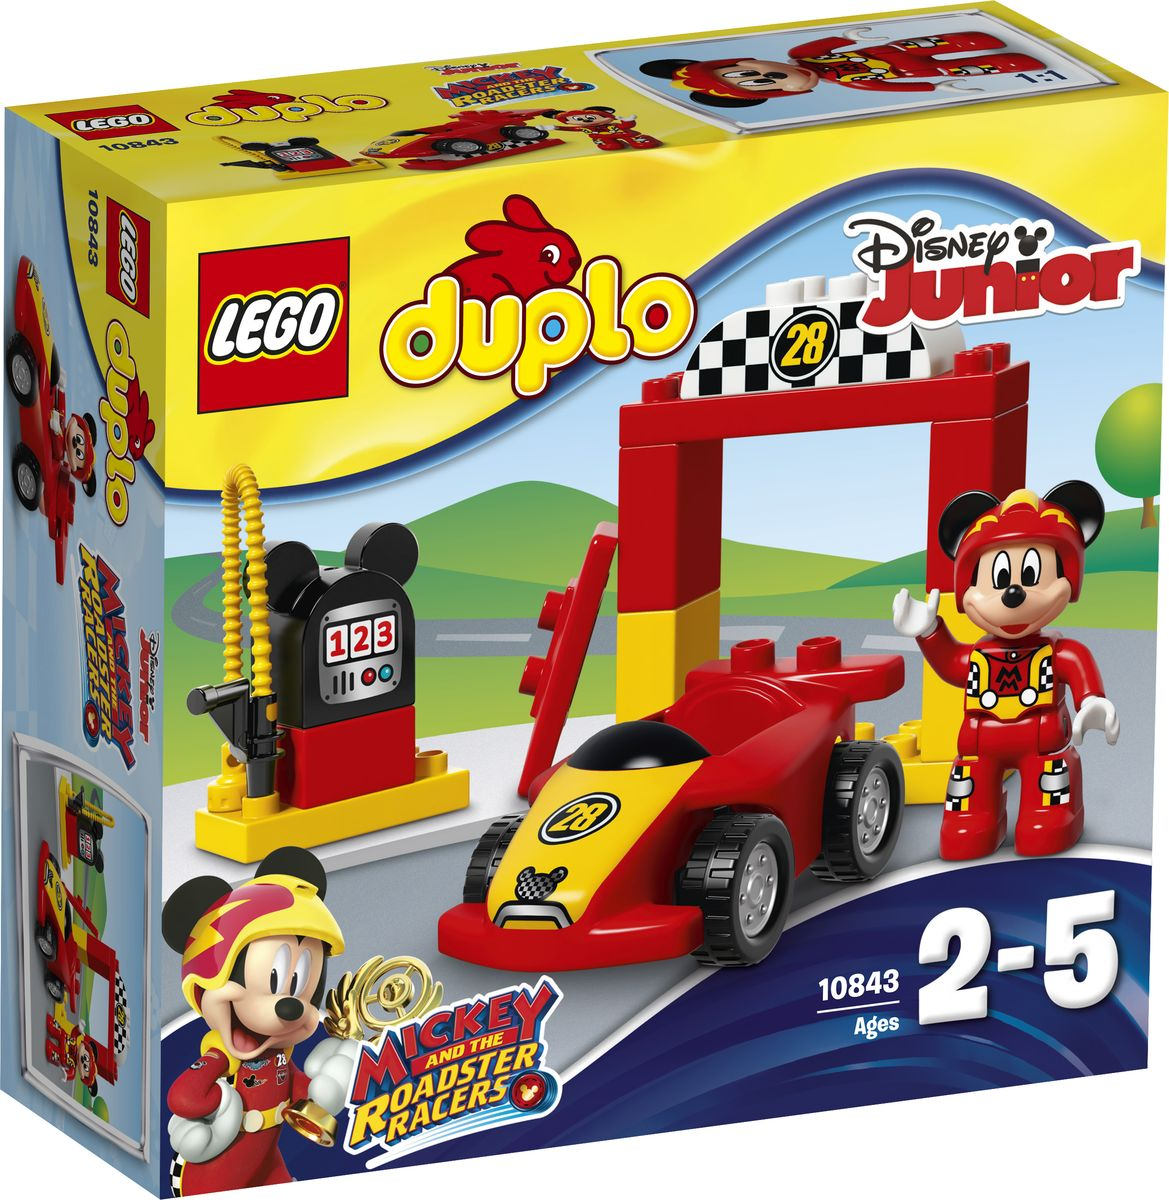 LEGO DUPLO Disney Junior Конструктор Гоночная машина Микки 10843 конструкторы lego lego duplo disney tm магазинчик минни маус 10844